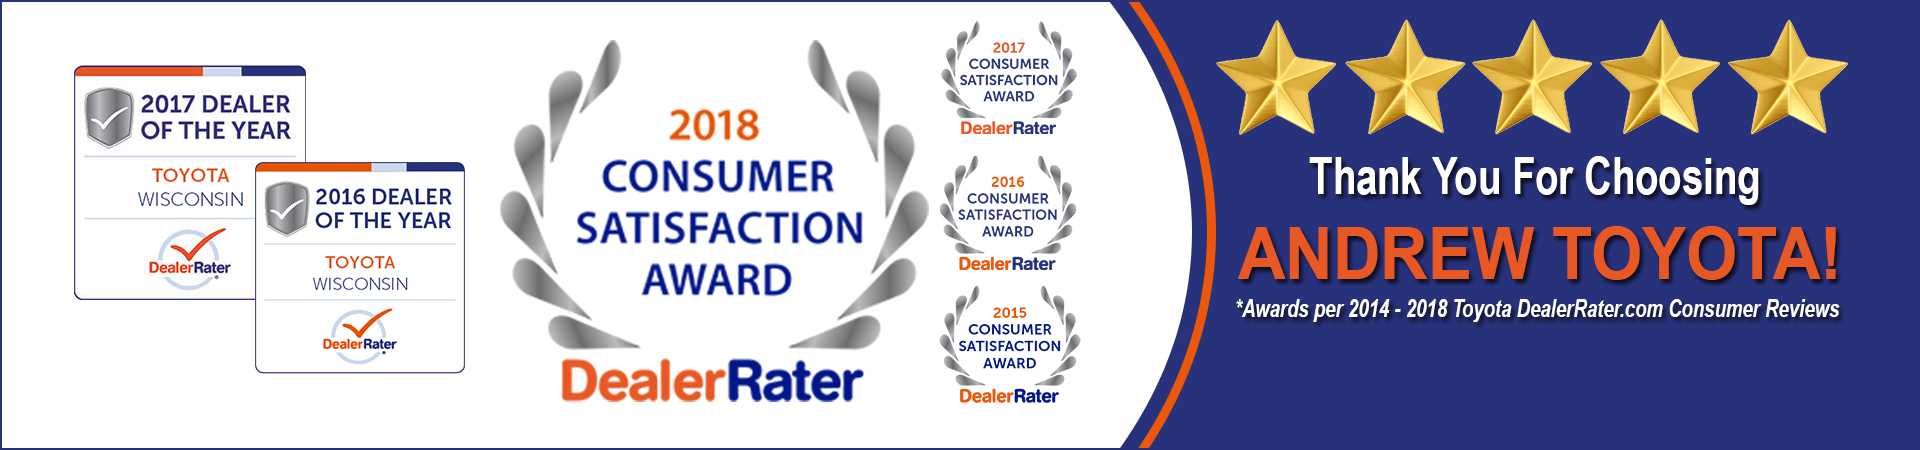 Andrew Toyota has been awarded a 2018 DealerRater Consumer Satisfaction Award, an annual recognition given to auto dealerships that deliver outstanding customer service as rated by online consumer reviews..